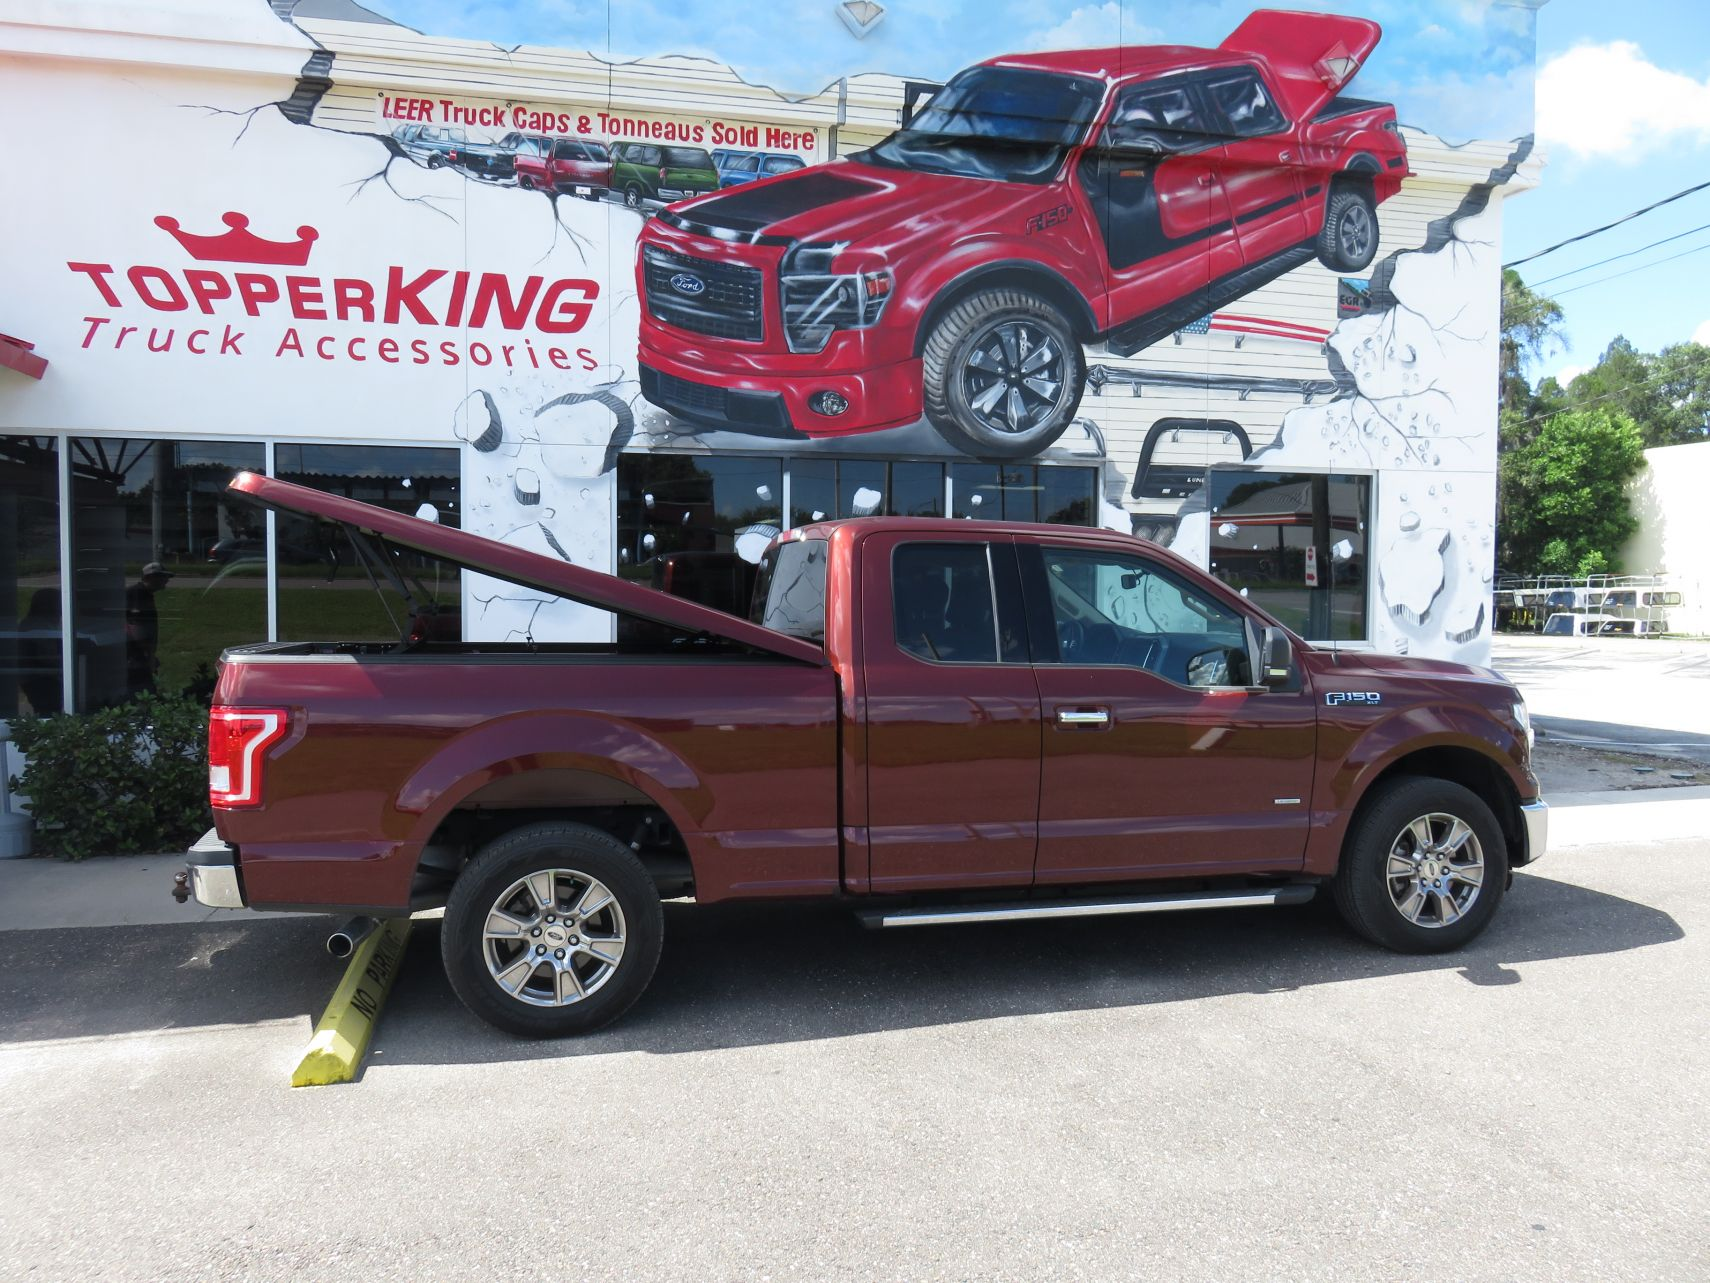 2015 Ford F150 with Leer 550 Fiberglass Tonneau, Nerf Bars, Tint, Chrome, Hitch by TopperKING in Brandon, FL 813-689-2449 or Clearwater, FL 727-530-9066. Call today!